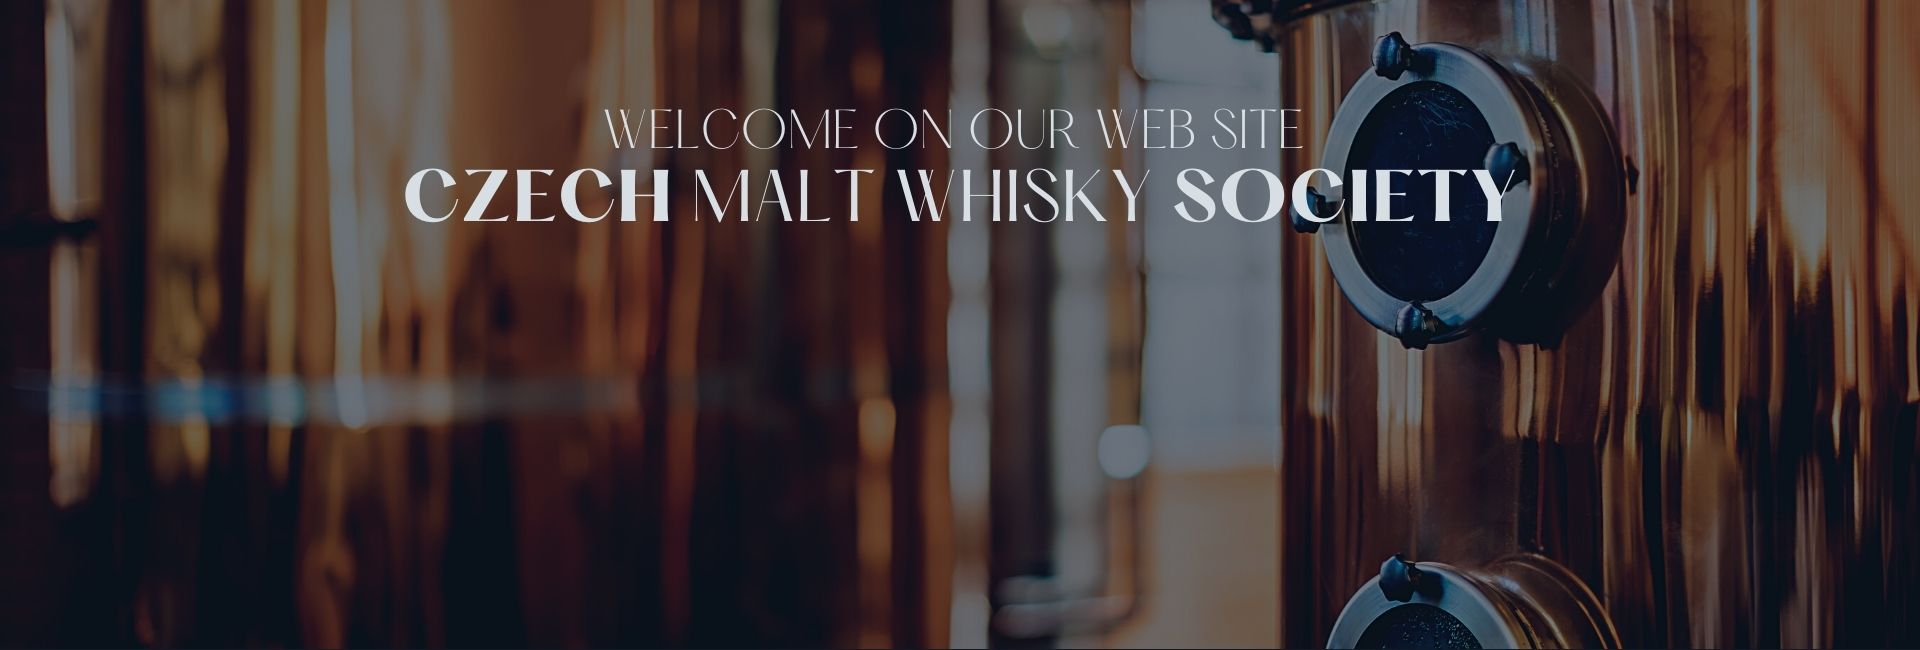 Czech Malt Whisky Society